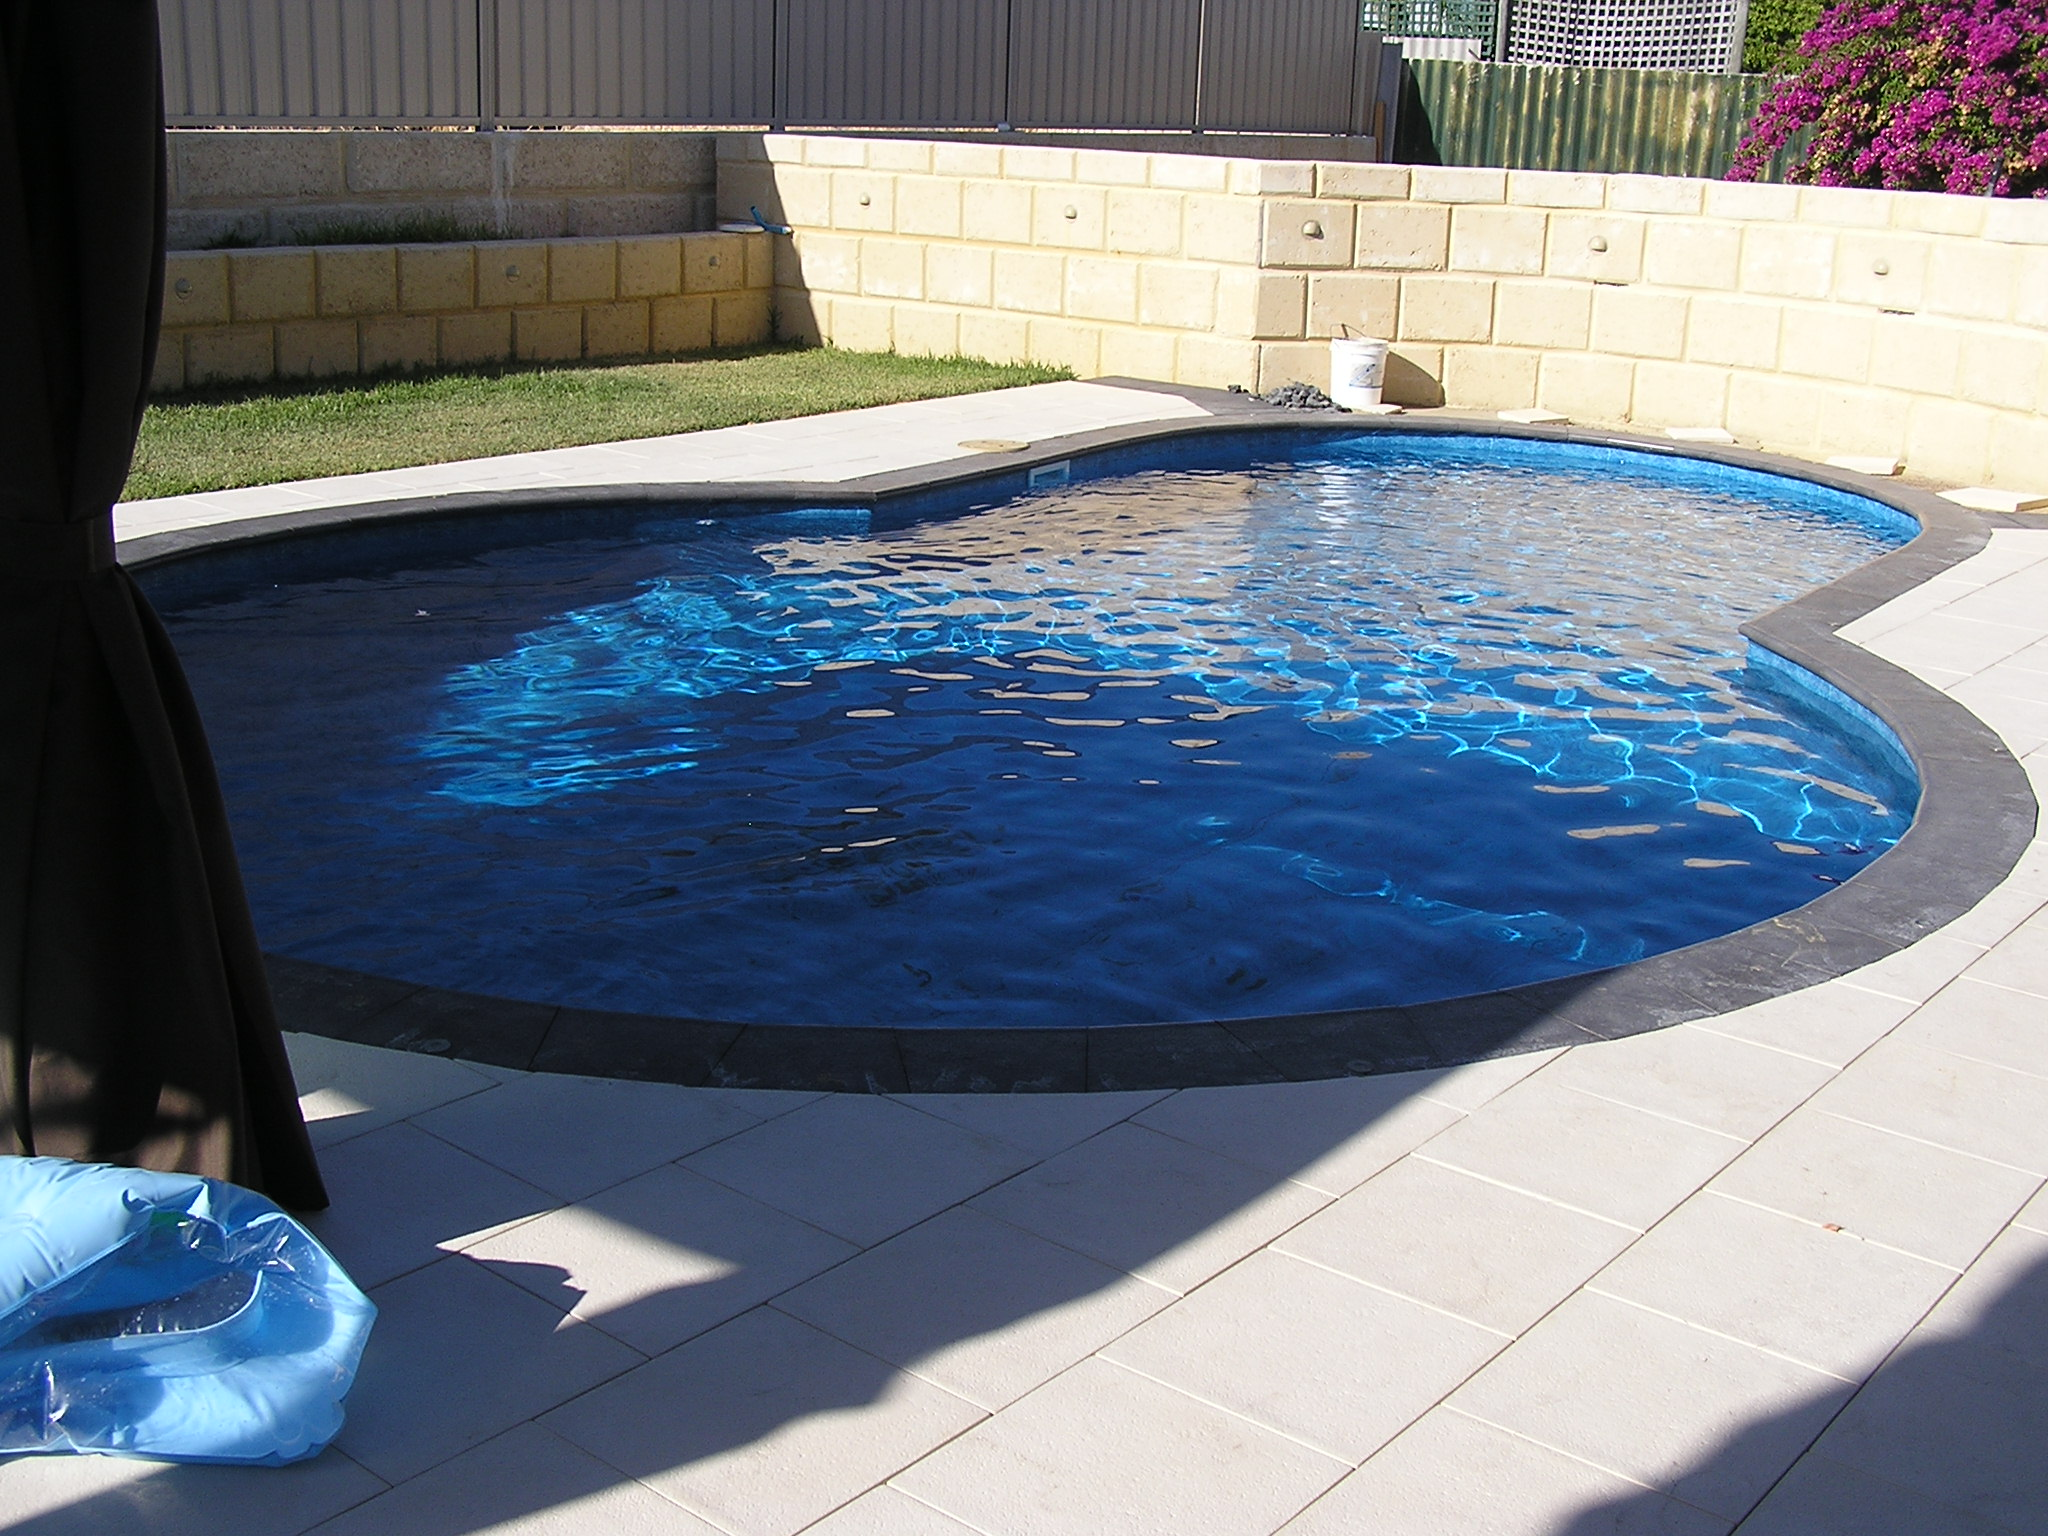 Pool paving and limestone feature